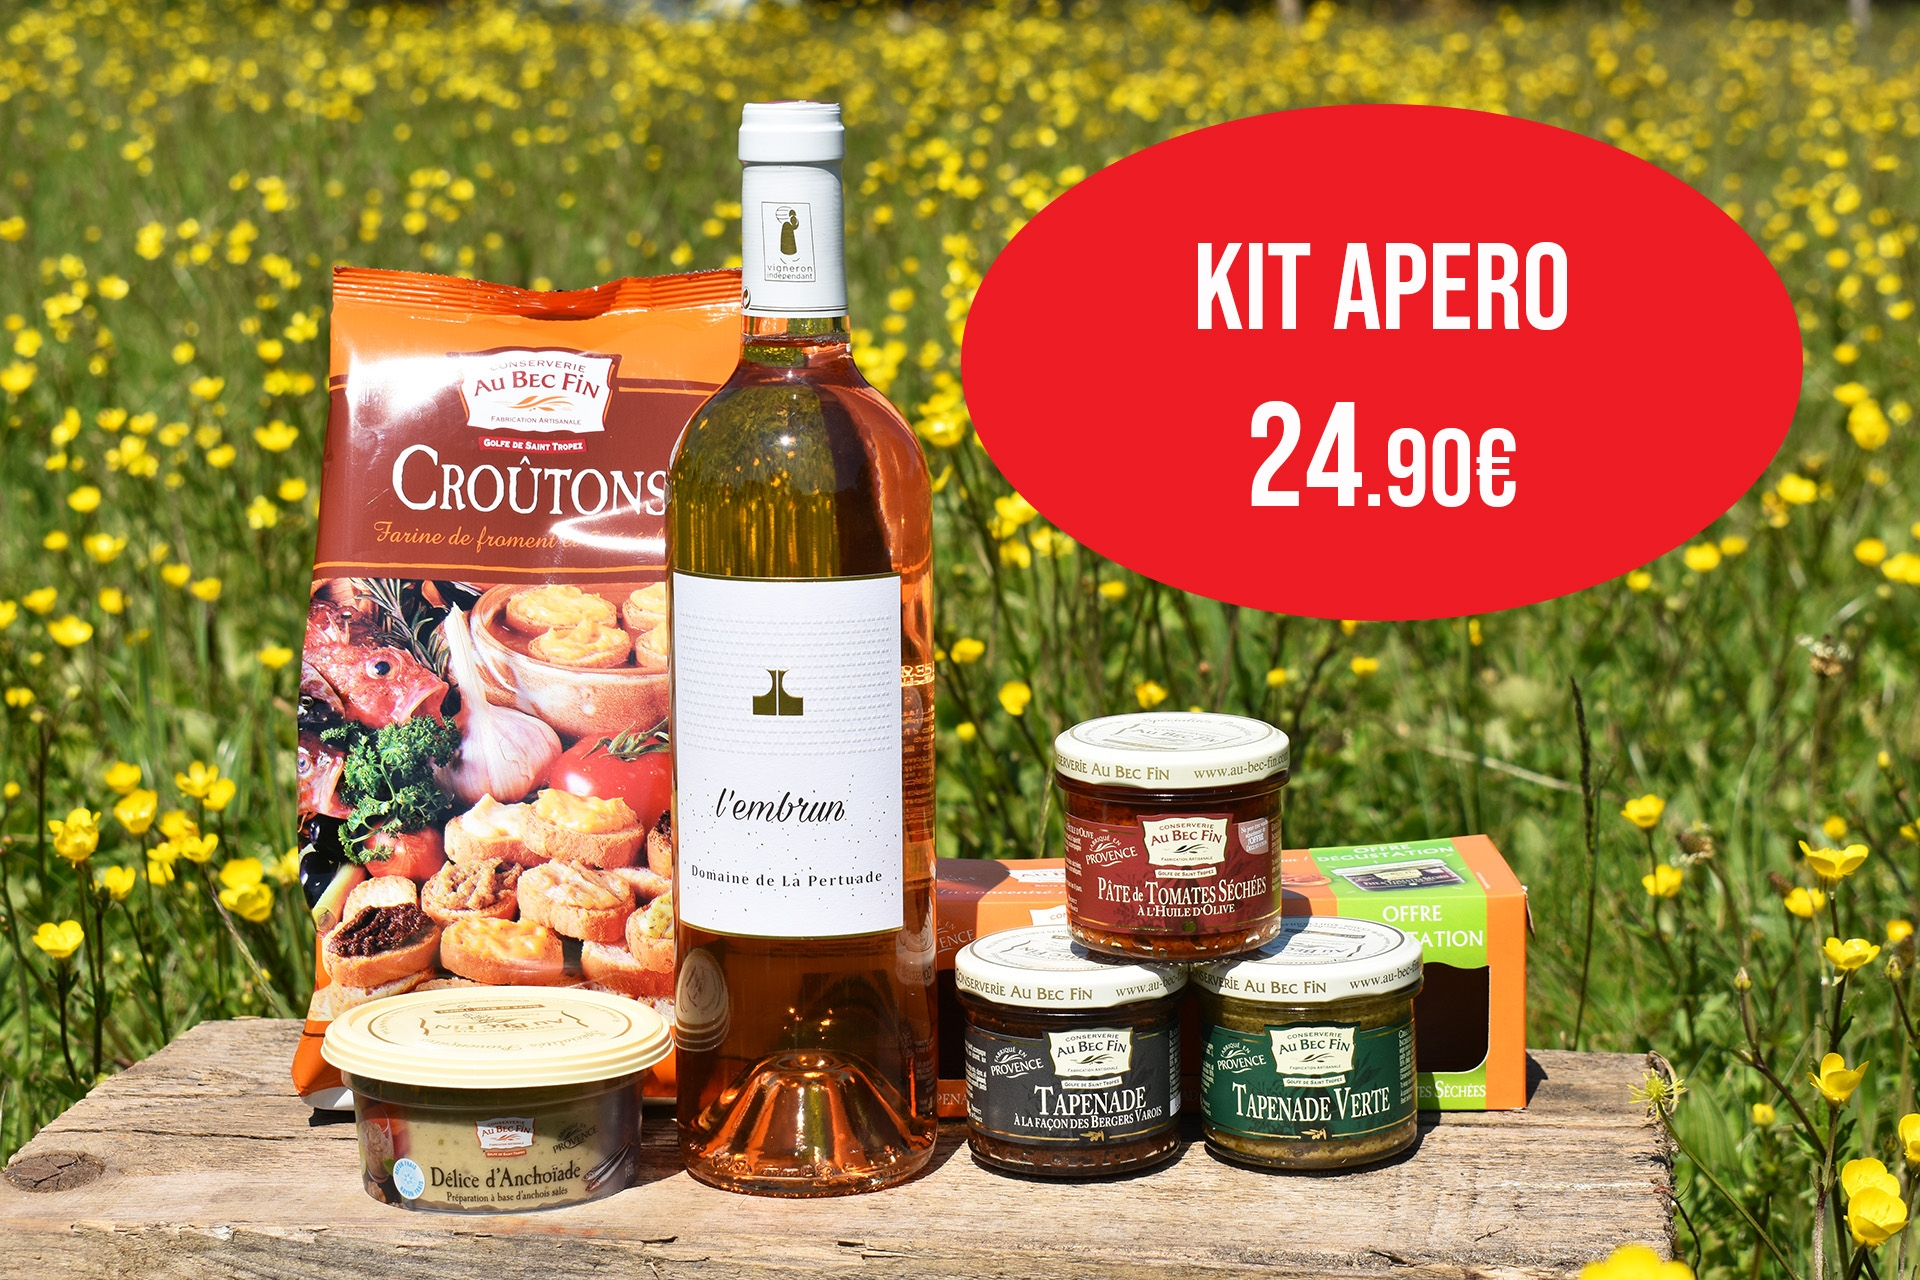 Tapenade & Tartinables